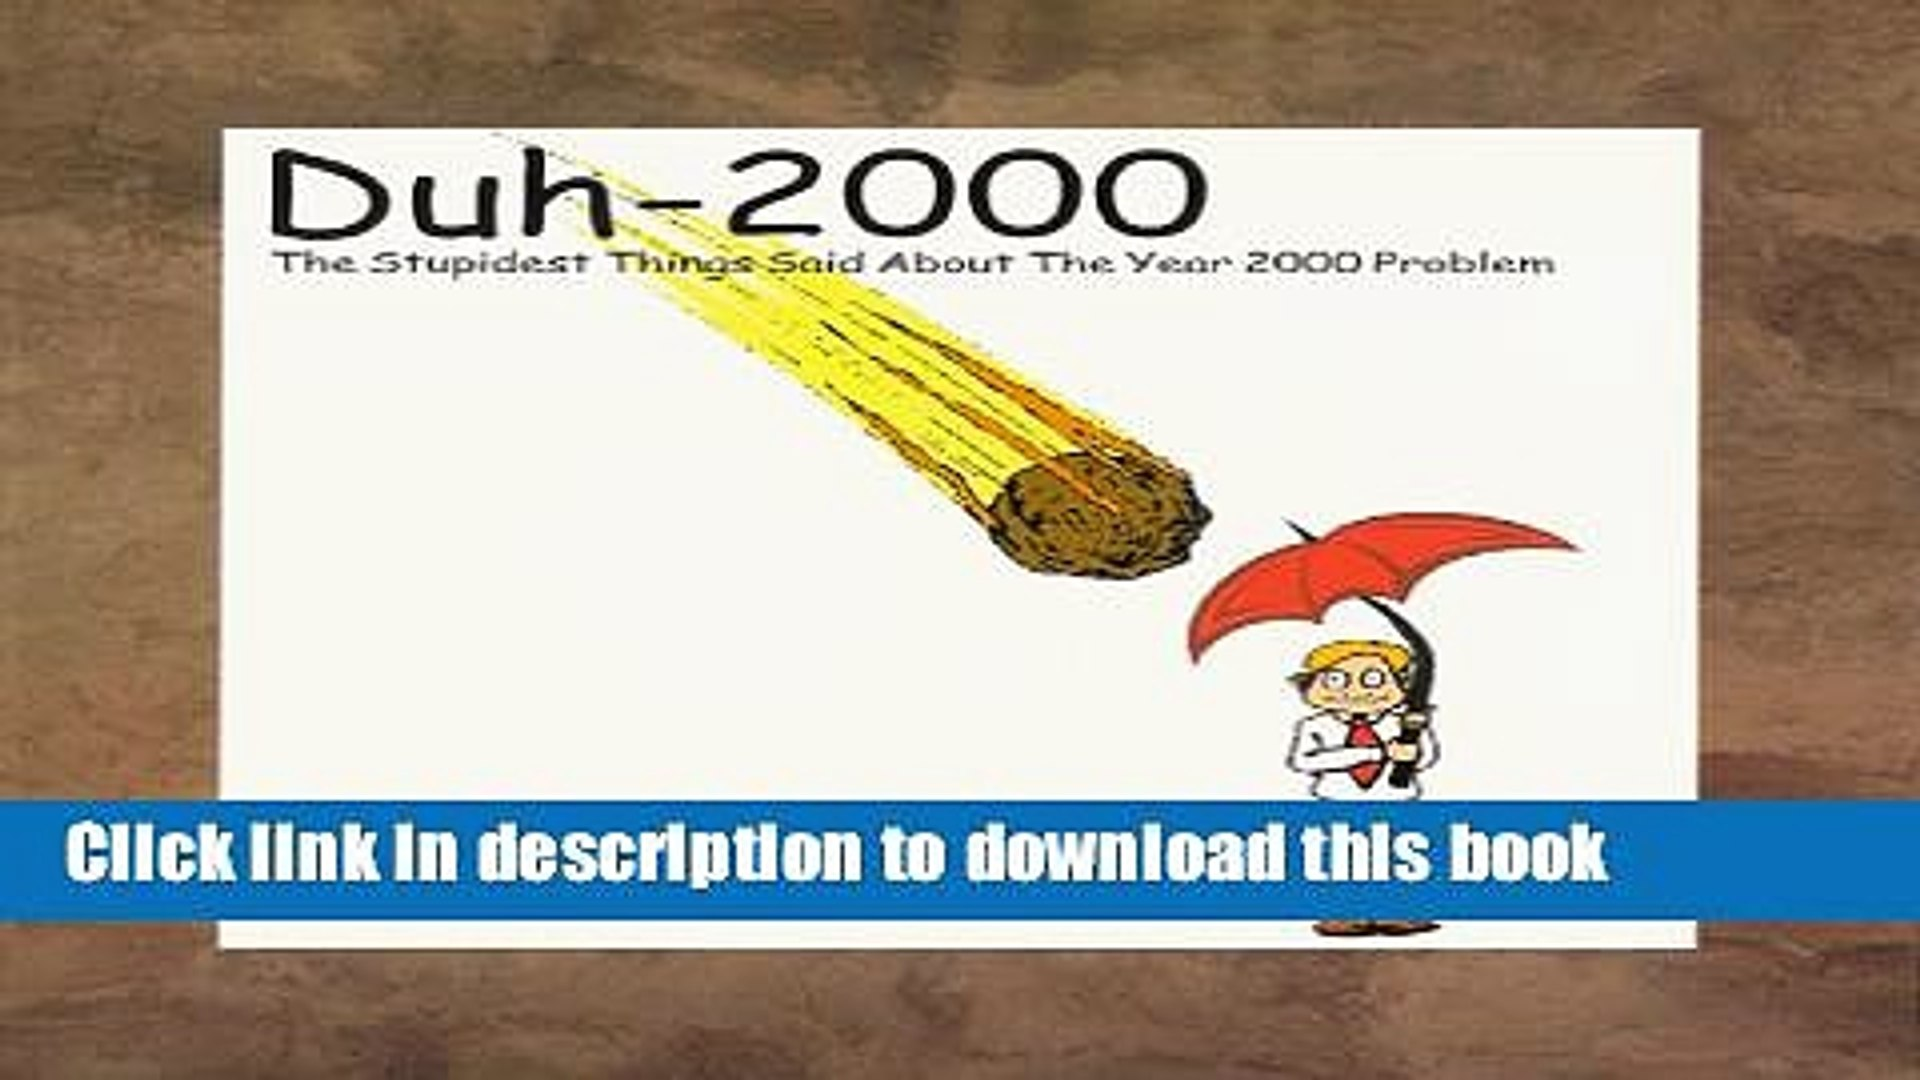 Read Duh-2000 : The Stupidest Things Said About The Year 2000 Problem Ebook Free